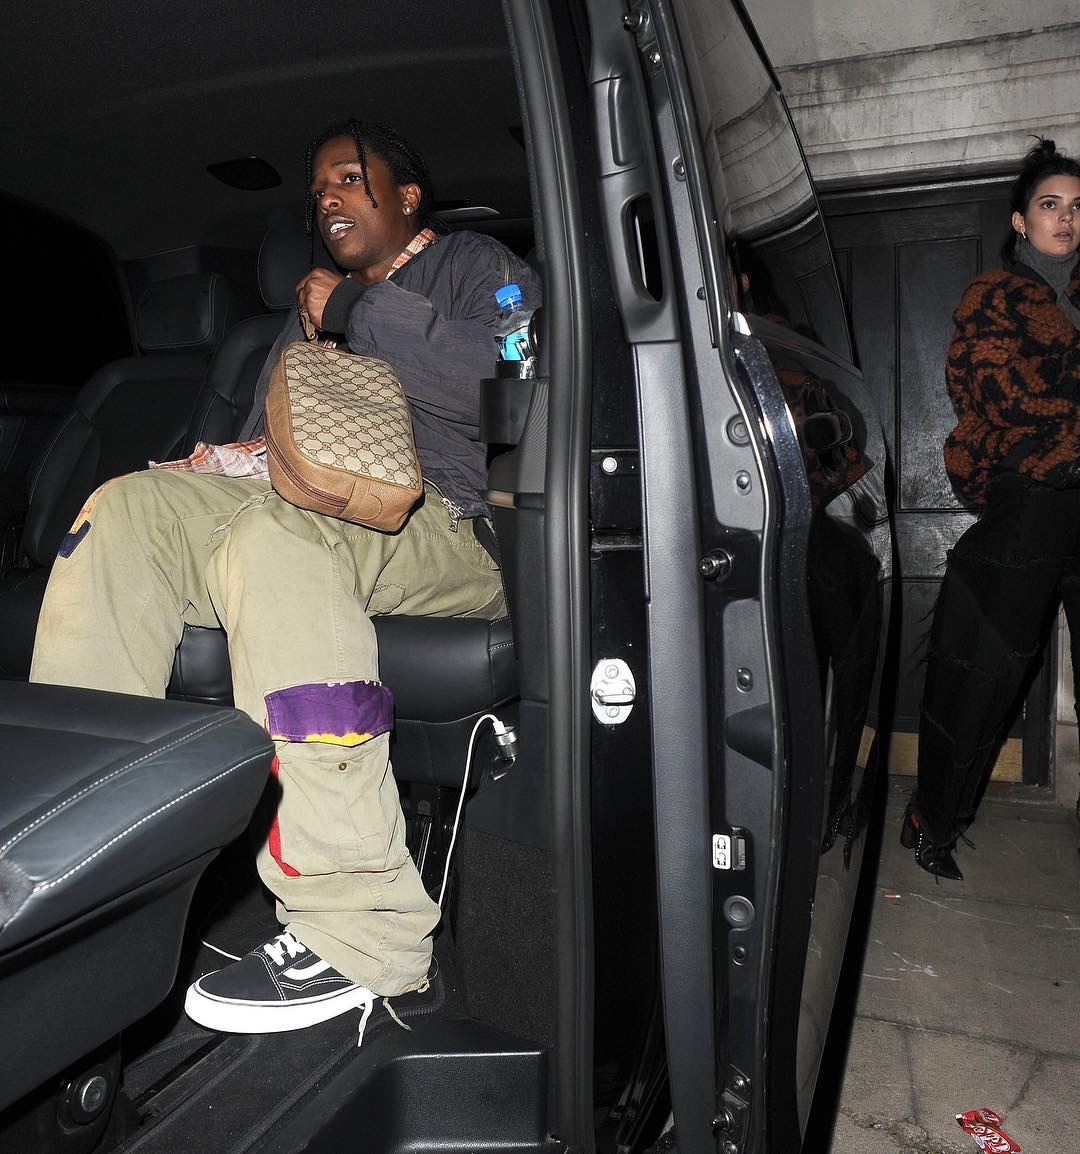 SPOTTED: A$AP Rocky In Vans Sneakers Carrying A Gucci Bag